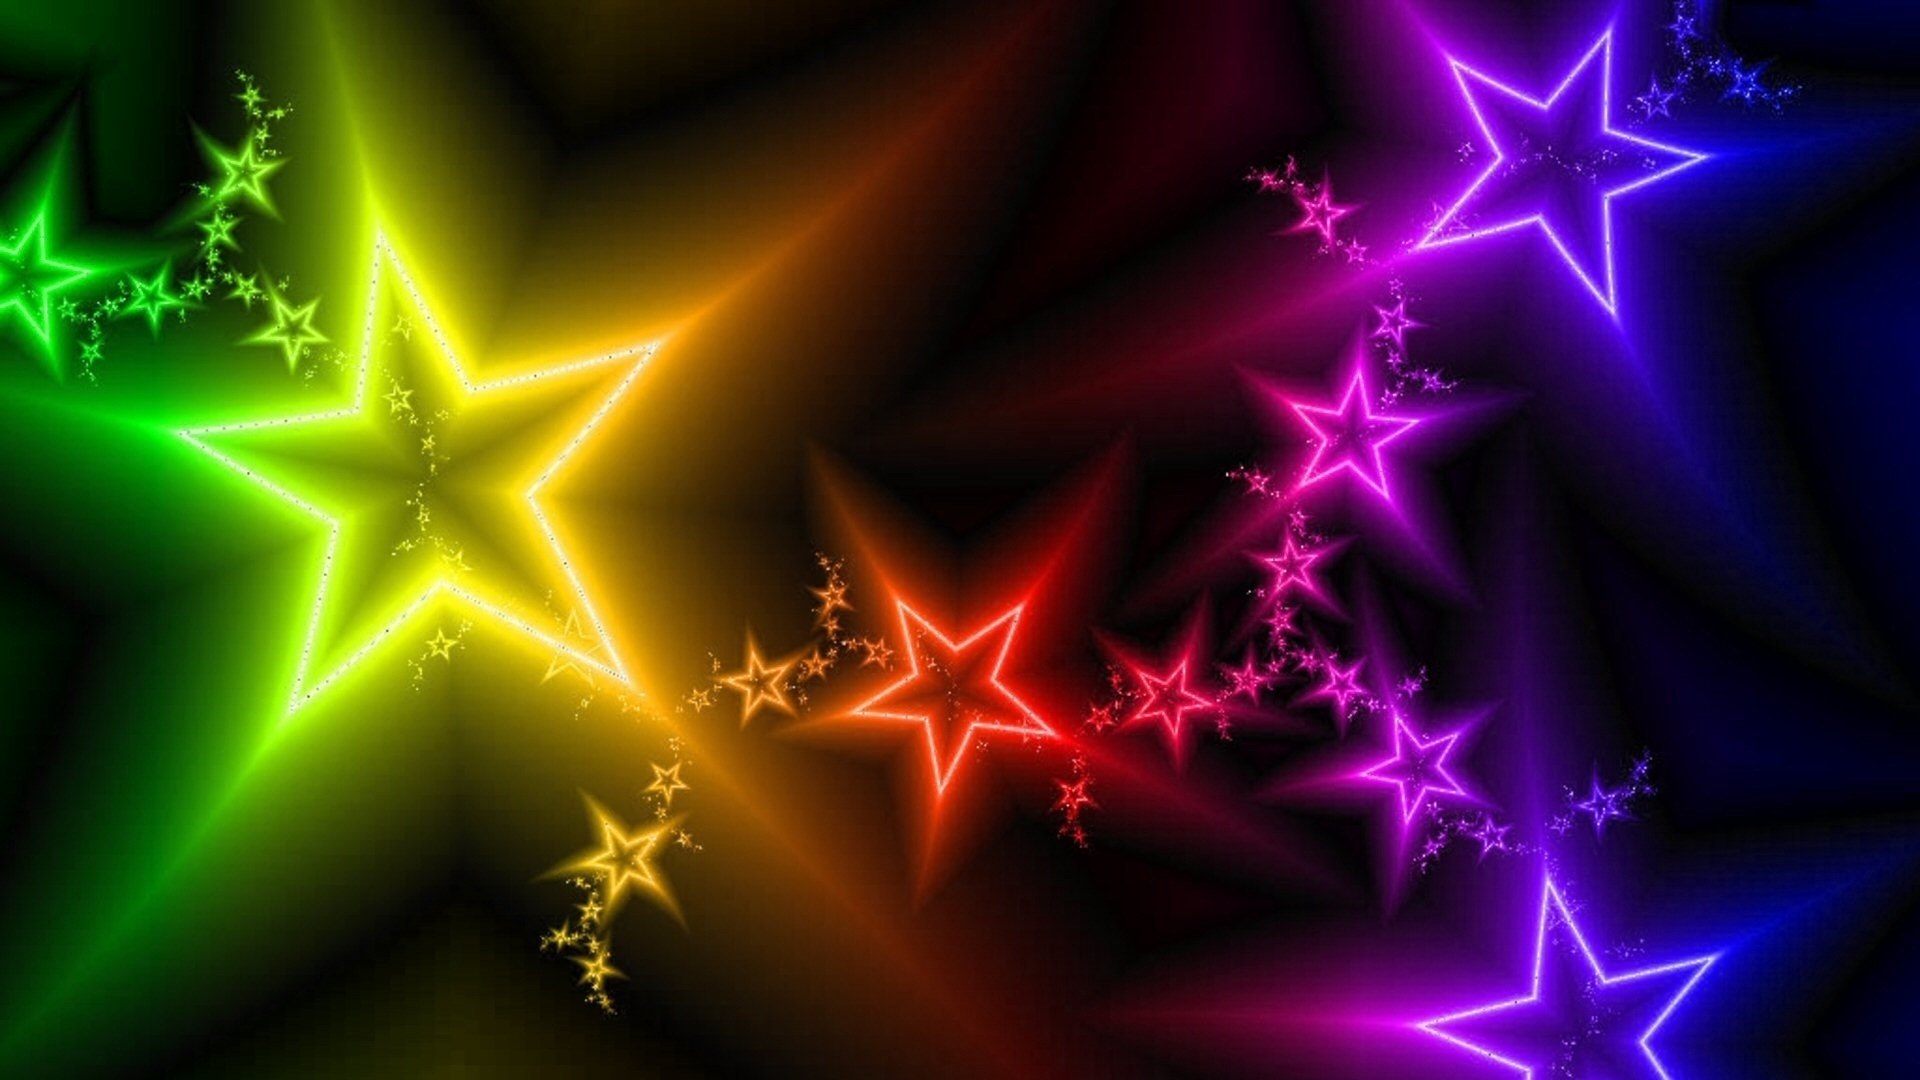 Wallpapers For > Neon Star Wallpaper